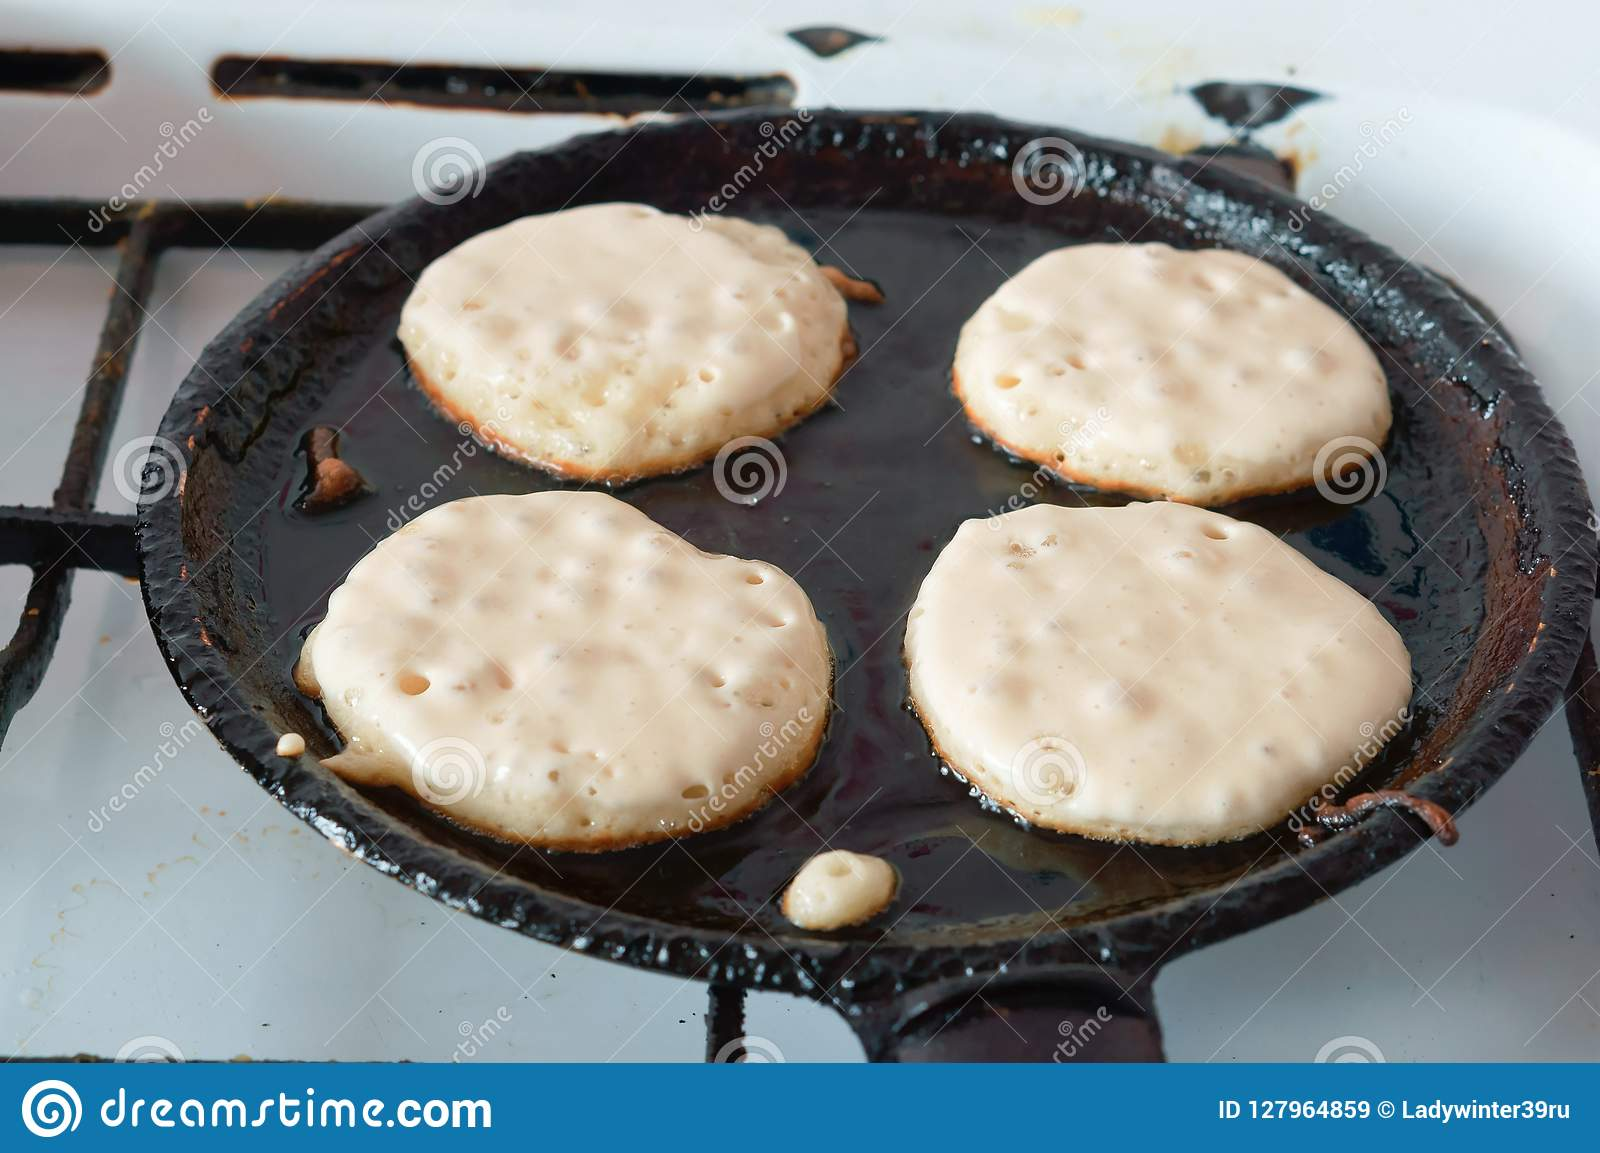 Four pancakes fried in a pan, cooking pancakes in a pan